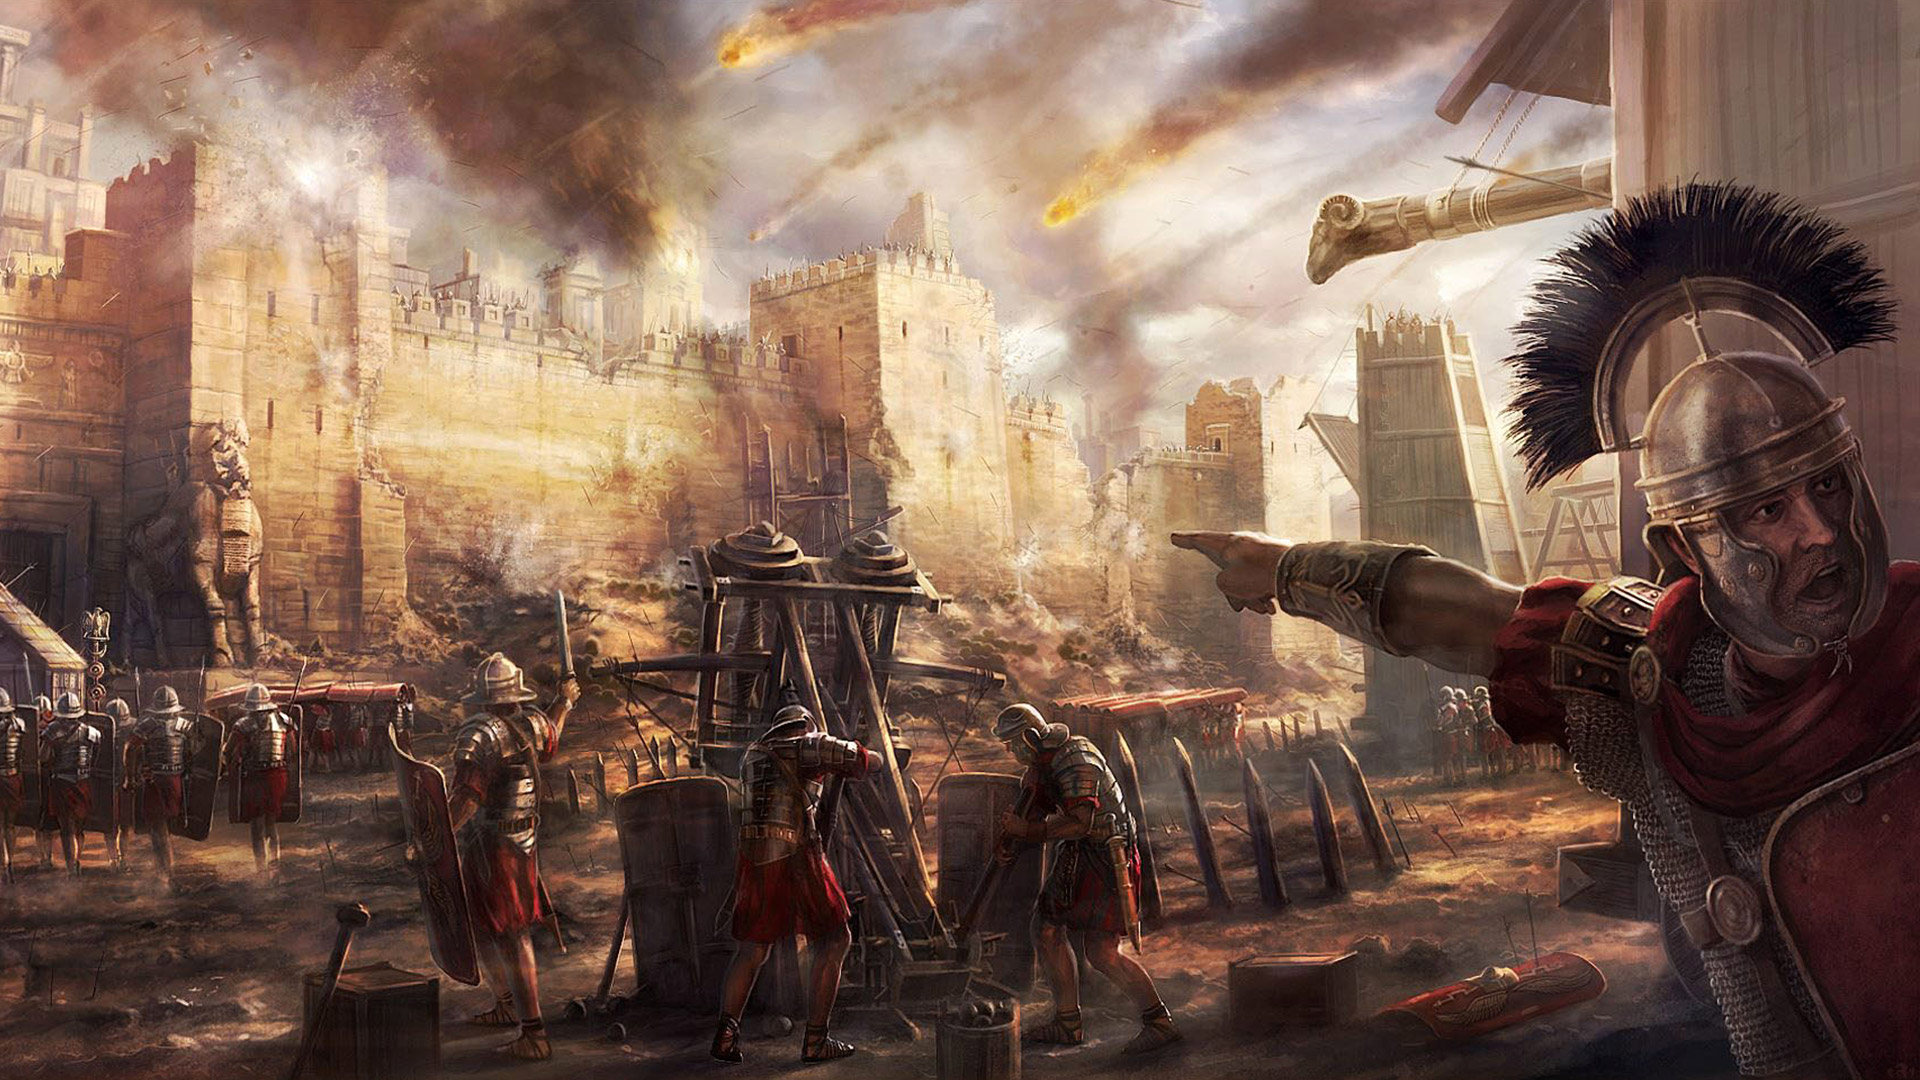 Wallpaper 10 Wallpaper From Total War Rome Ii Gamepressure Com